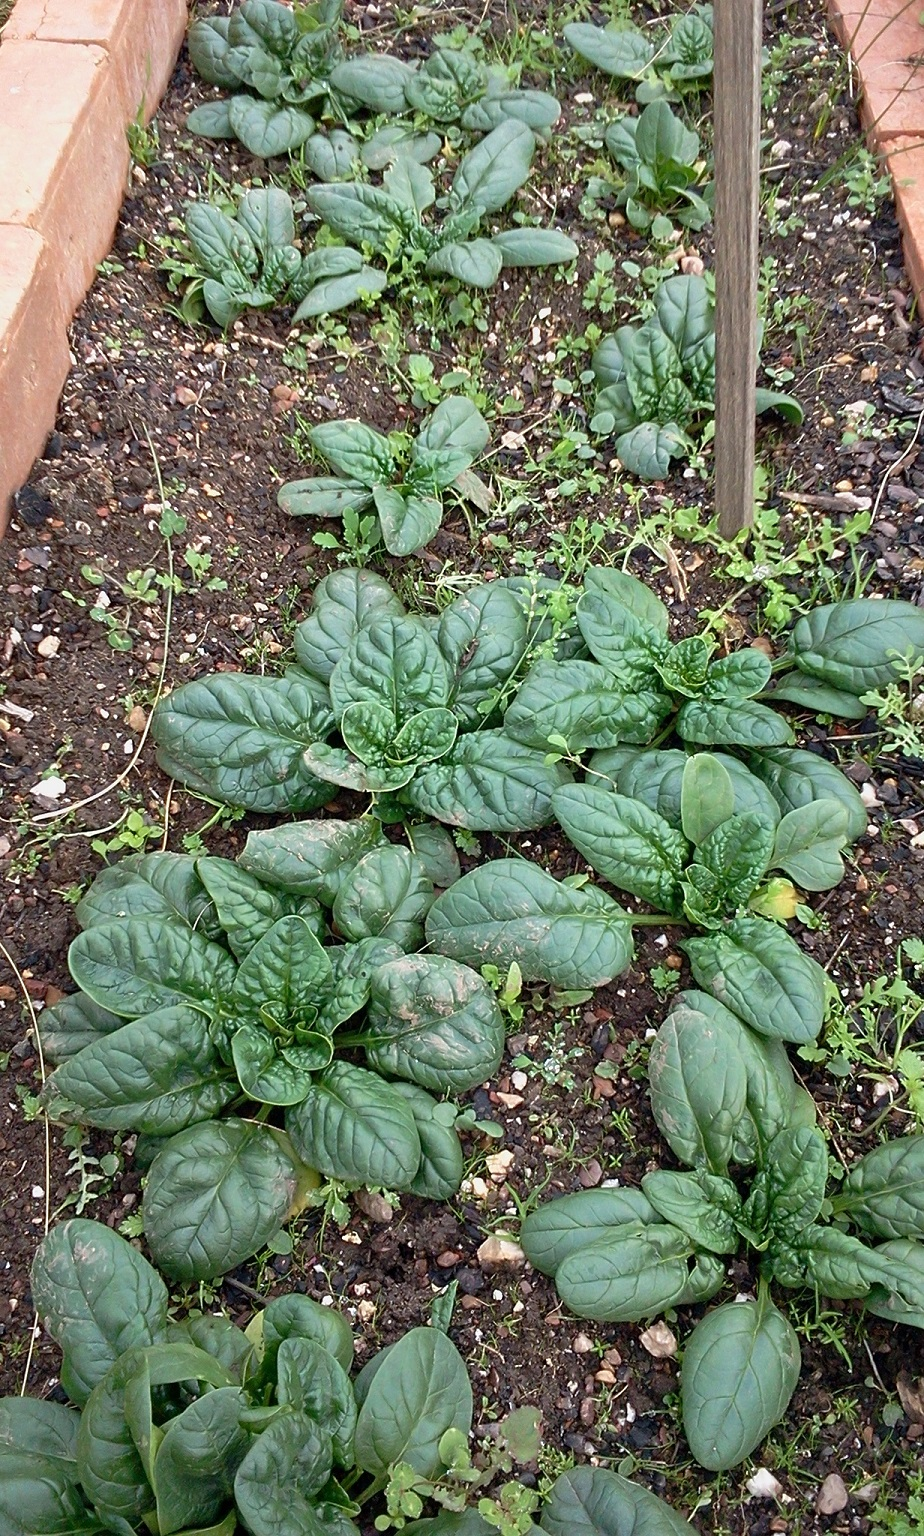 Autumn Spinach May 2018